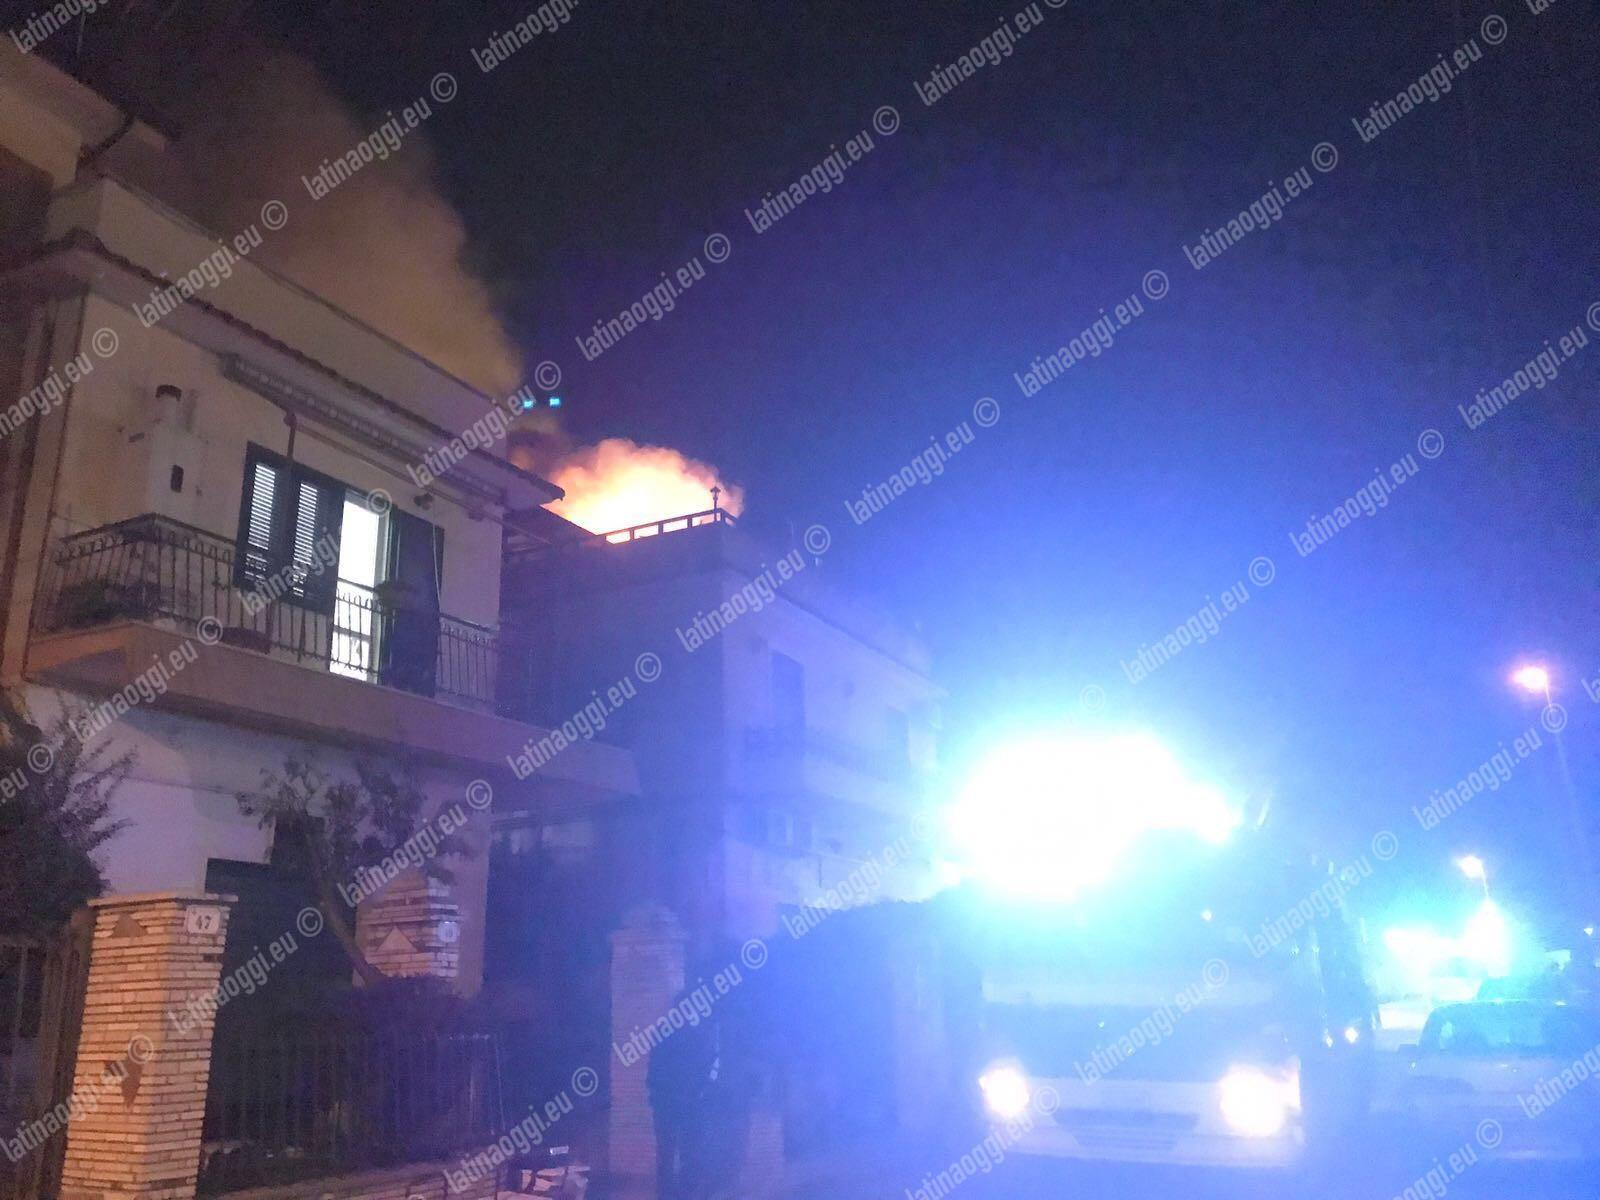 Divampa un incendio all'interno di un appartamento, paura per i residenti in via Monviso